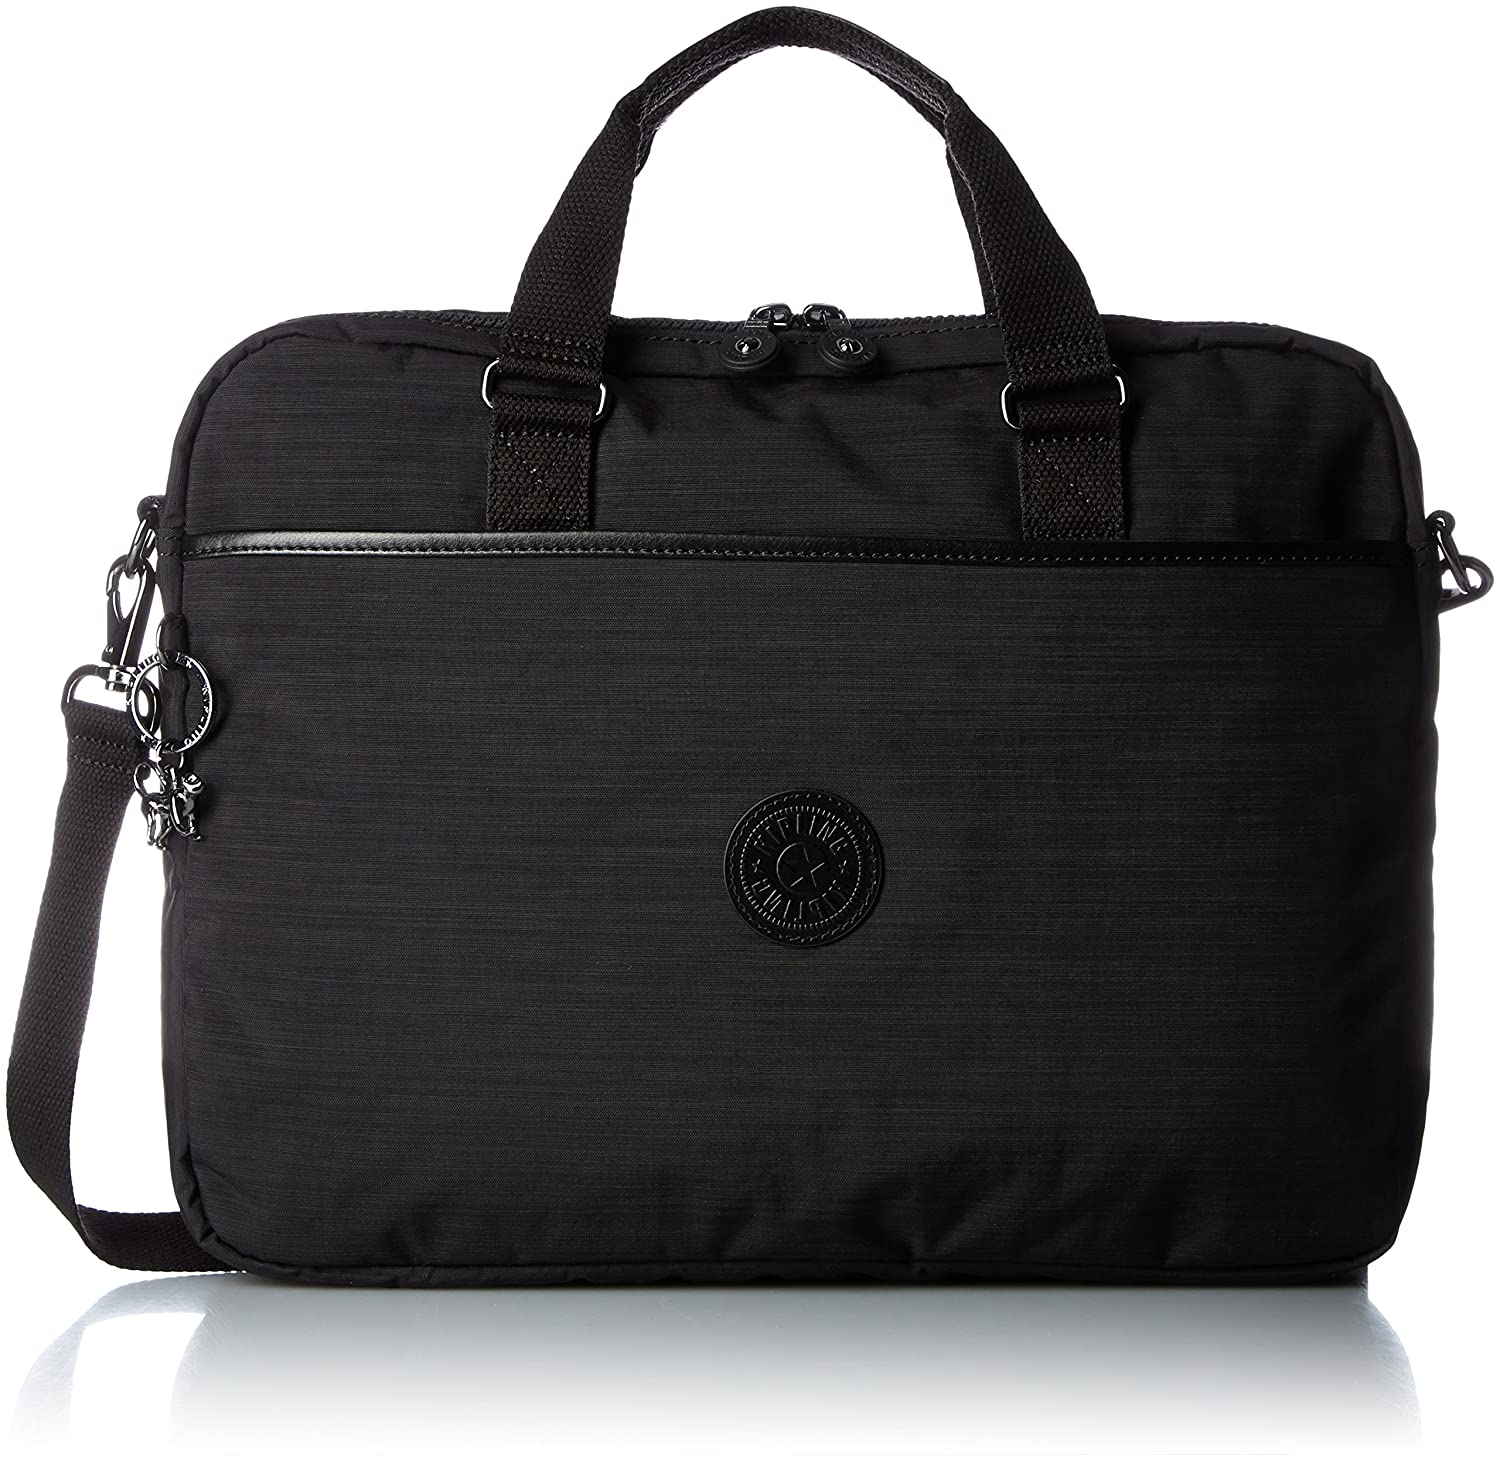 278f90c40dee51 Kipling - Computer bag (with removable shoulderstrap) - KAITLYN - True Blue  Emb  Amazon.co.uk  Luggage